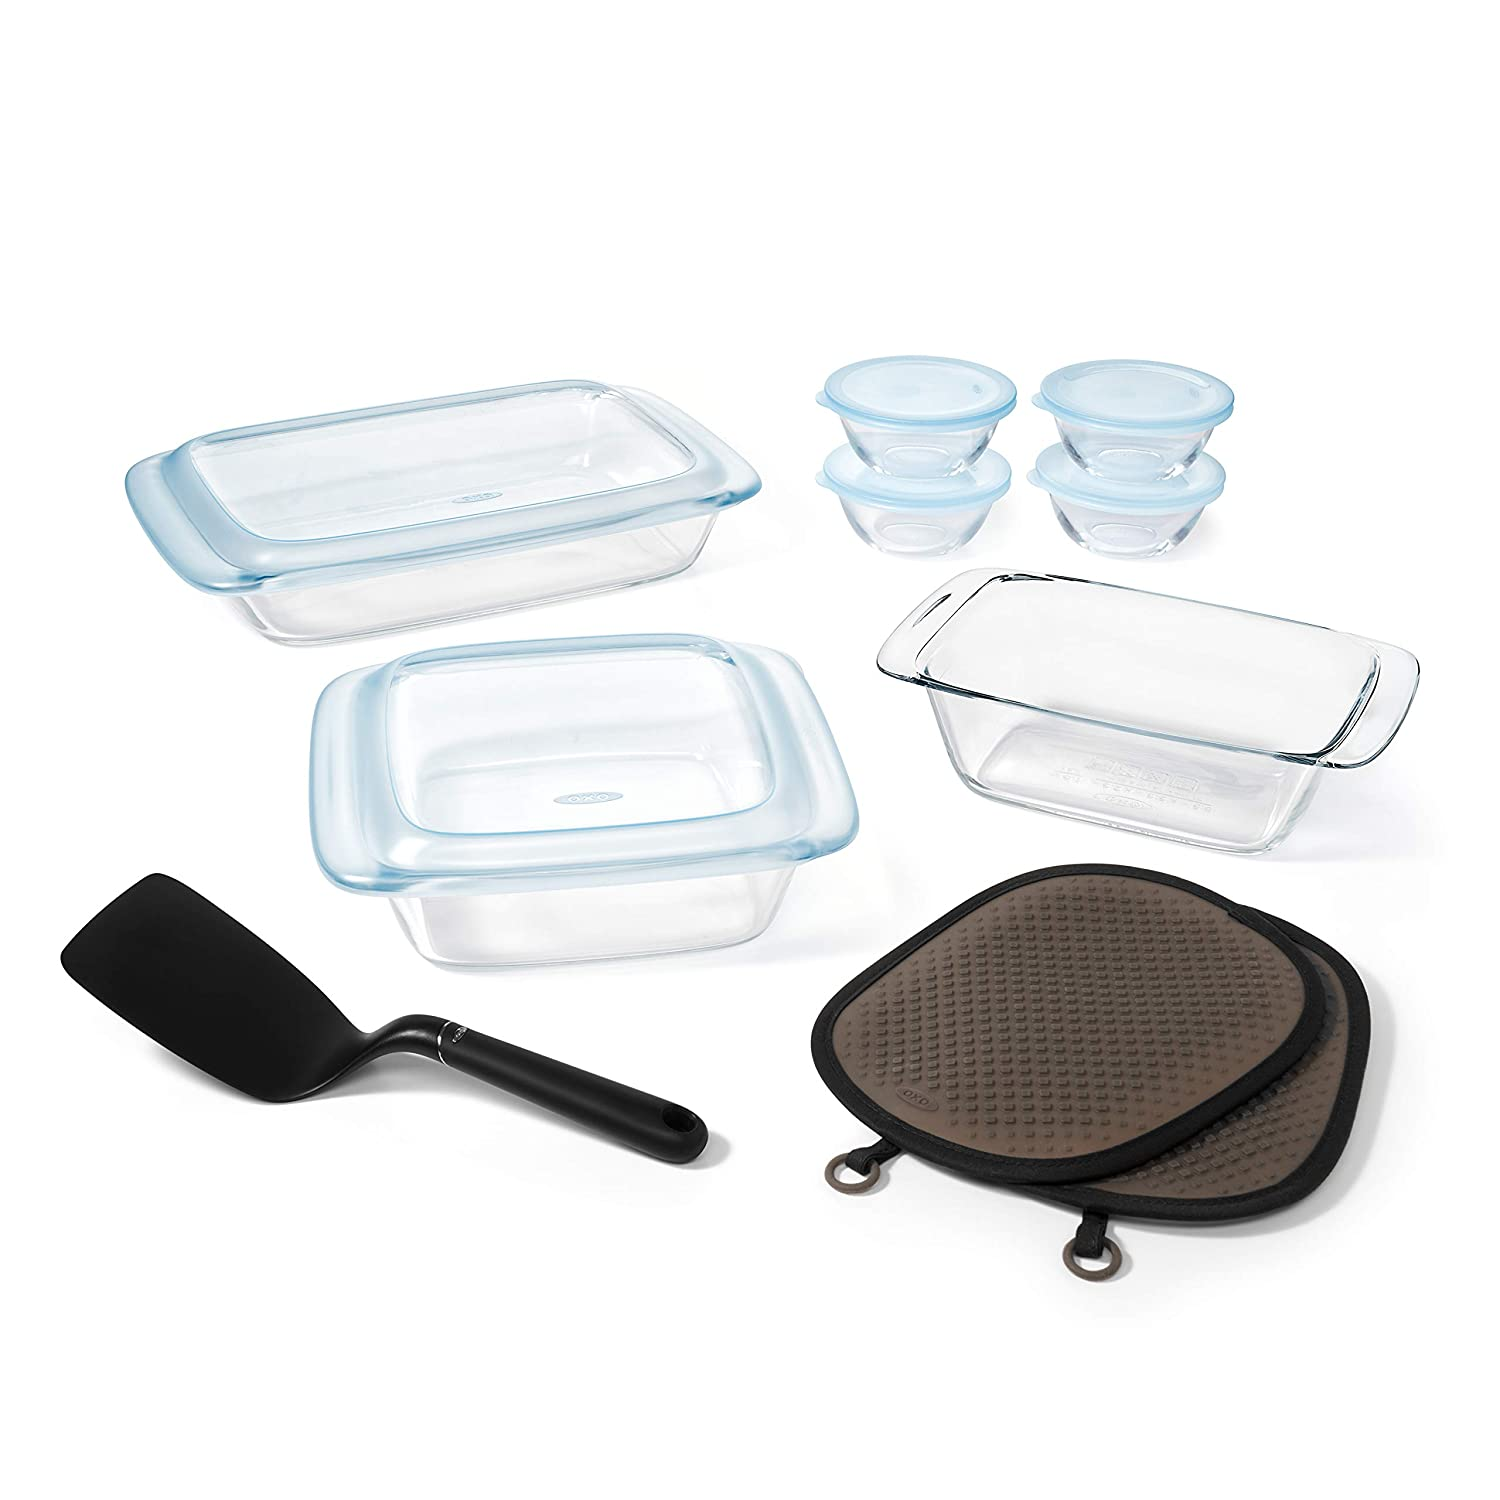 OXO Good Grips Freezer-to-Oven Safe 1.6 Qt Glass Loaf Pan 11176000